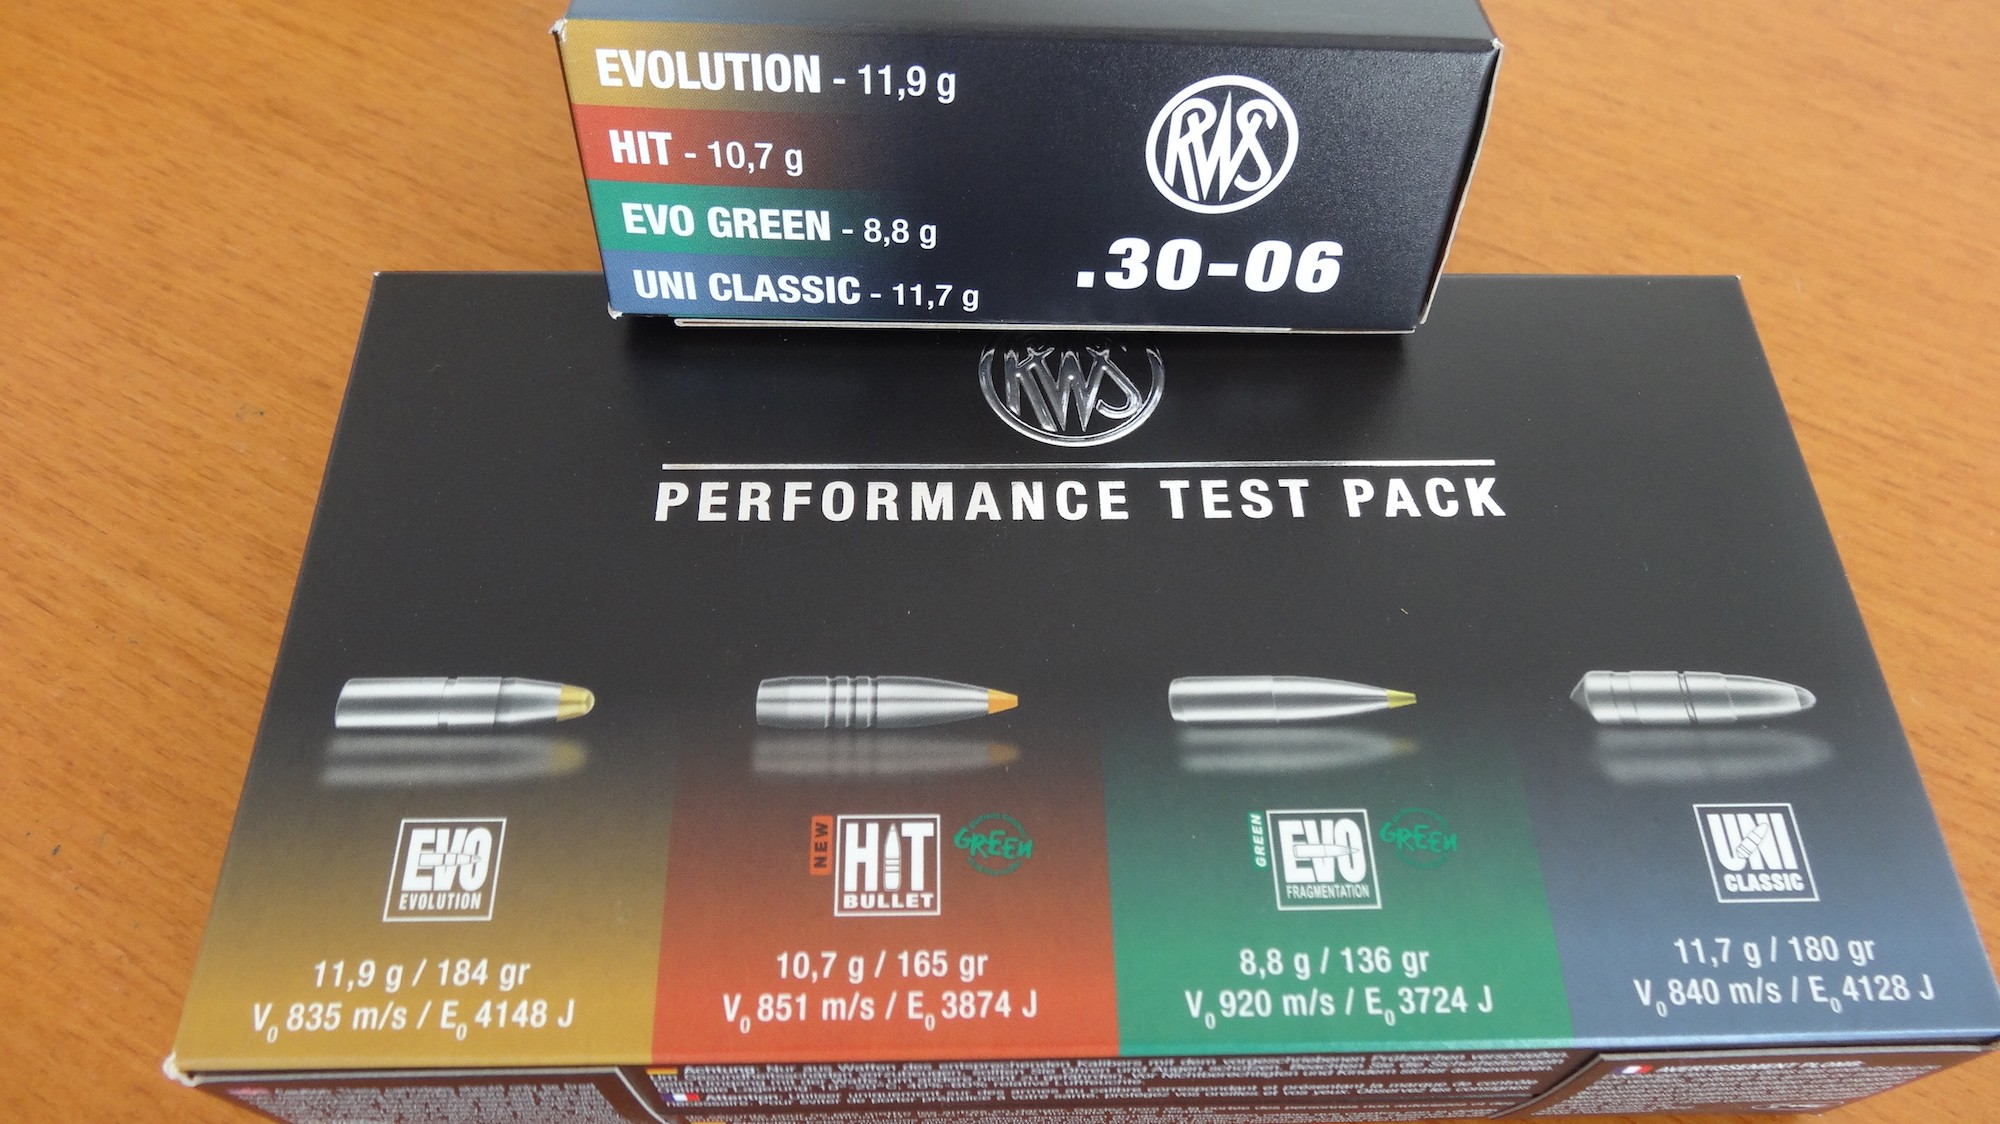 RWS Performance Test Pack Cal. .30-06: